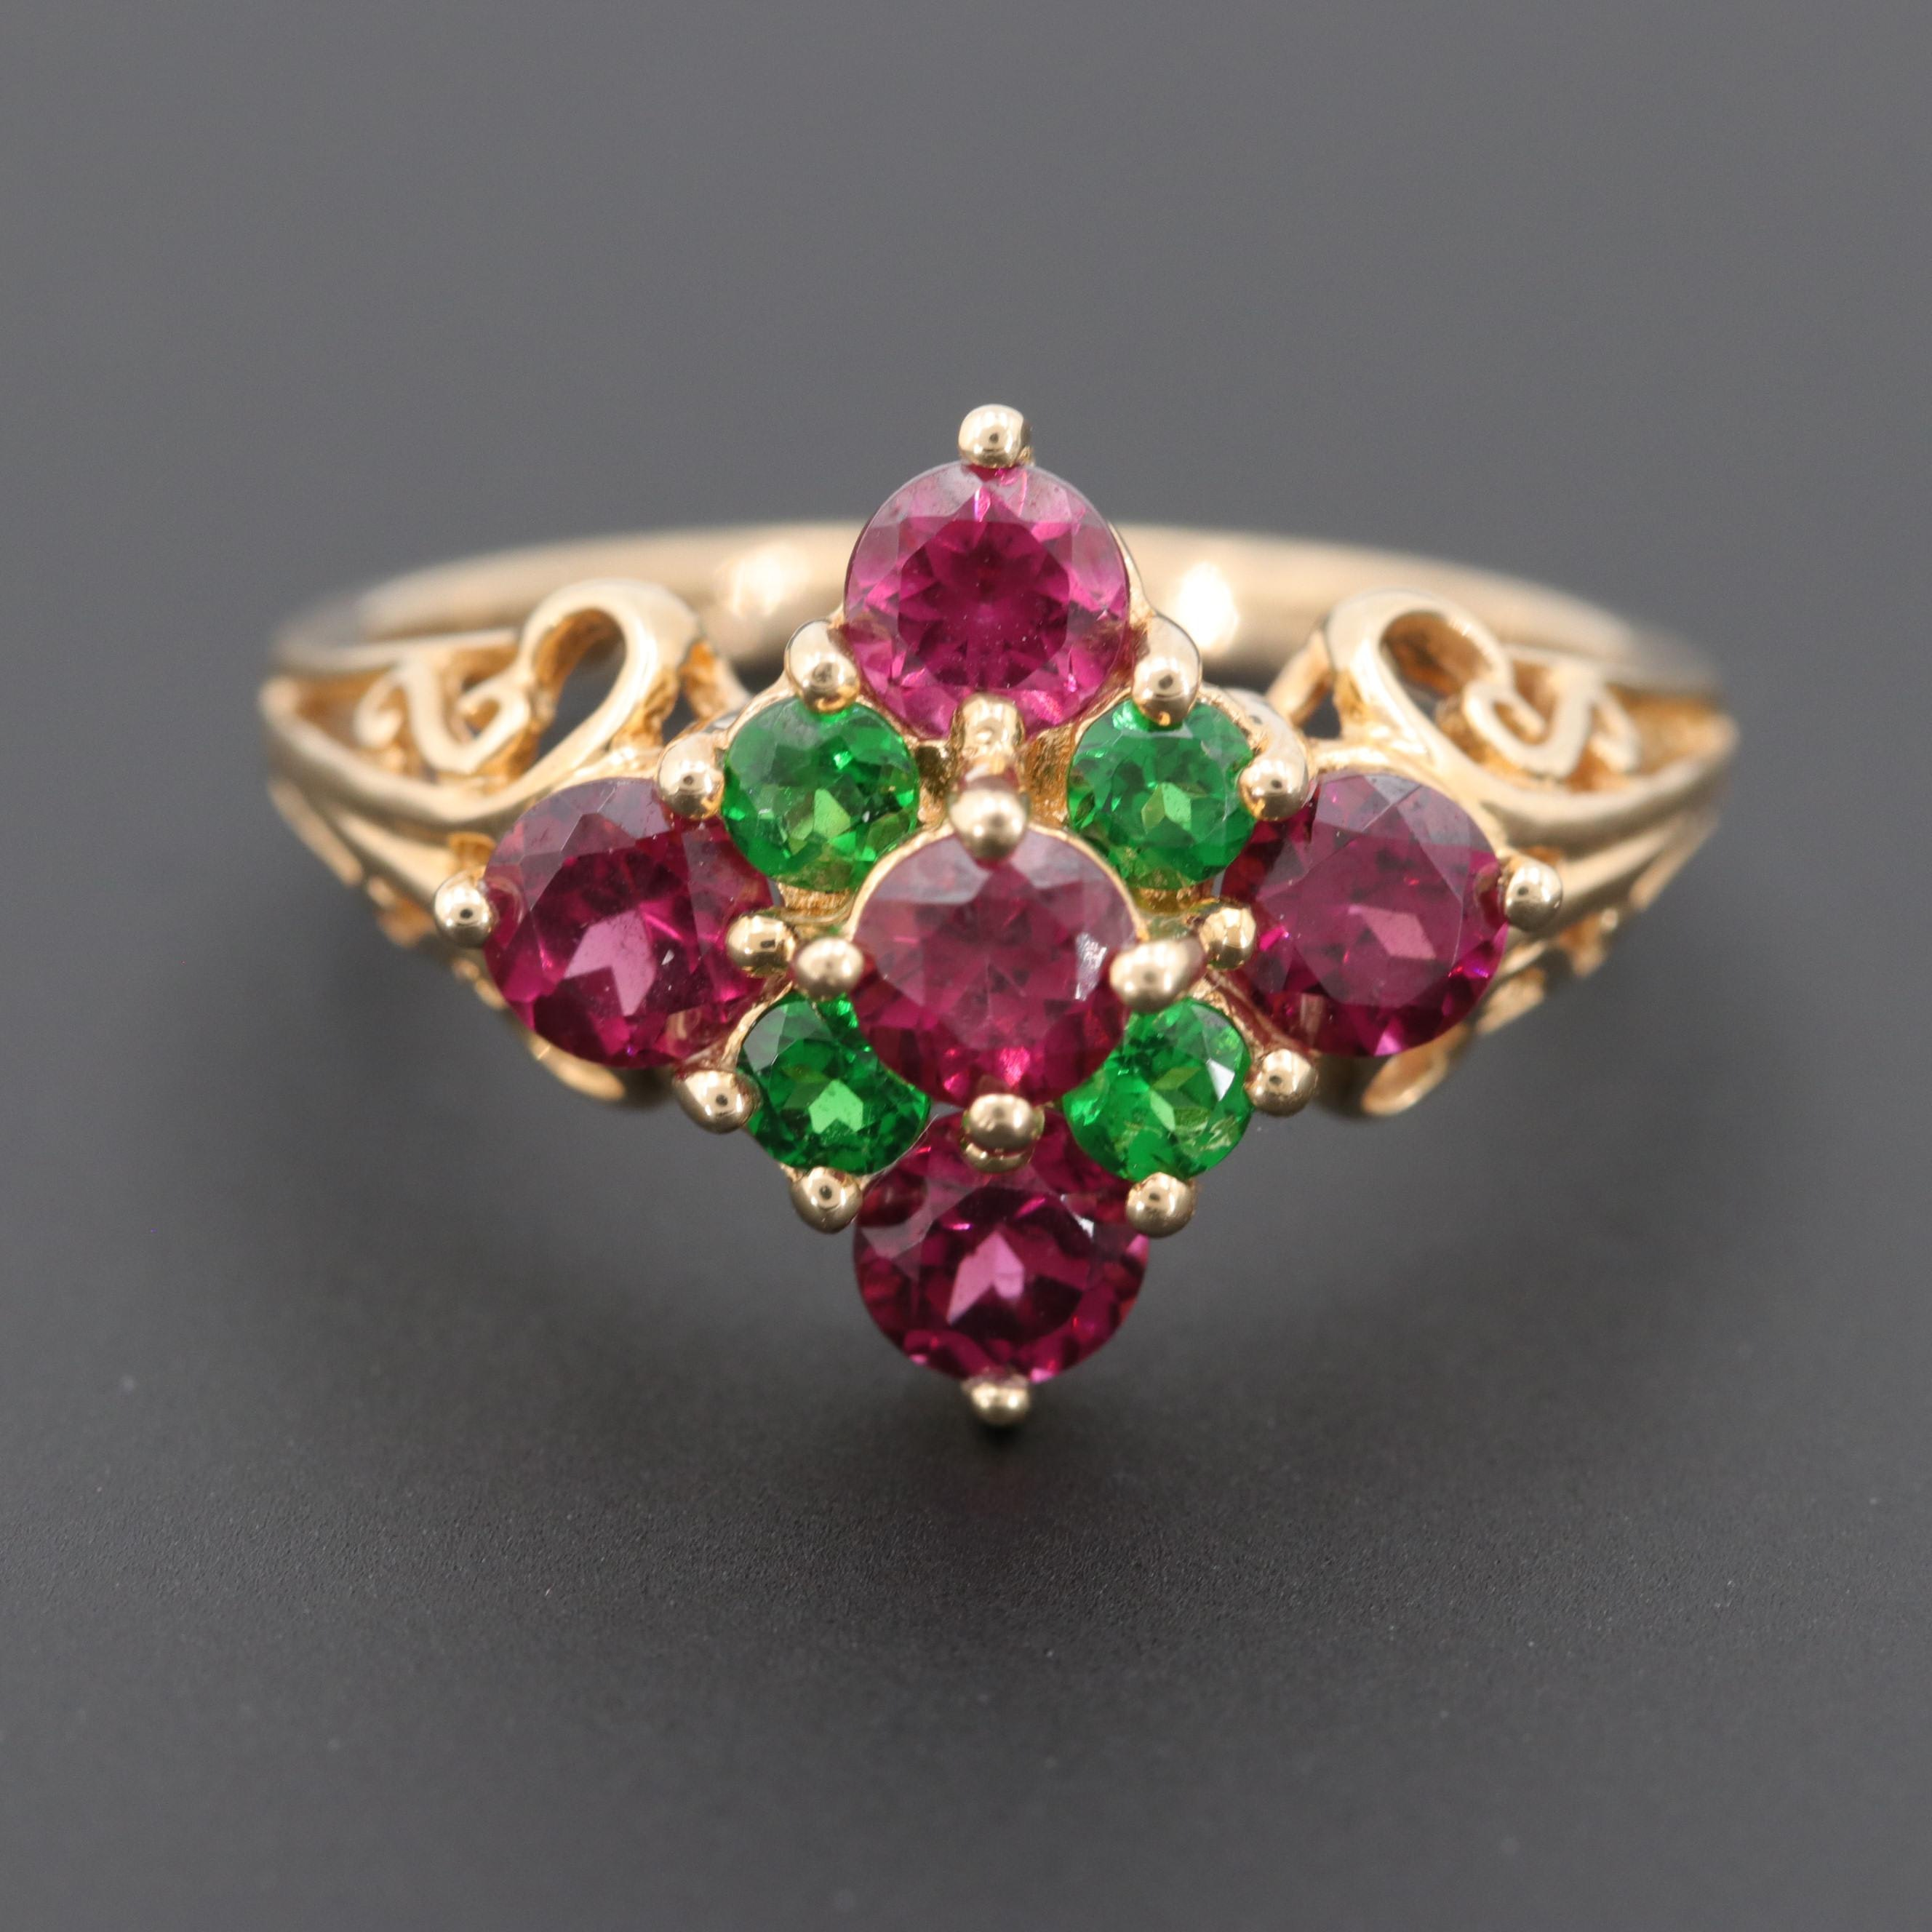 14K Yellow Gold Rhodolite Garnet and Chrome Diopside Ring